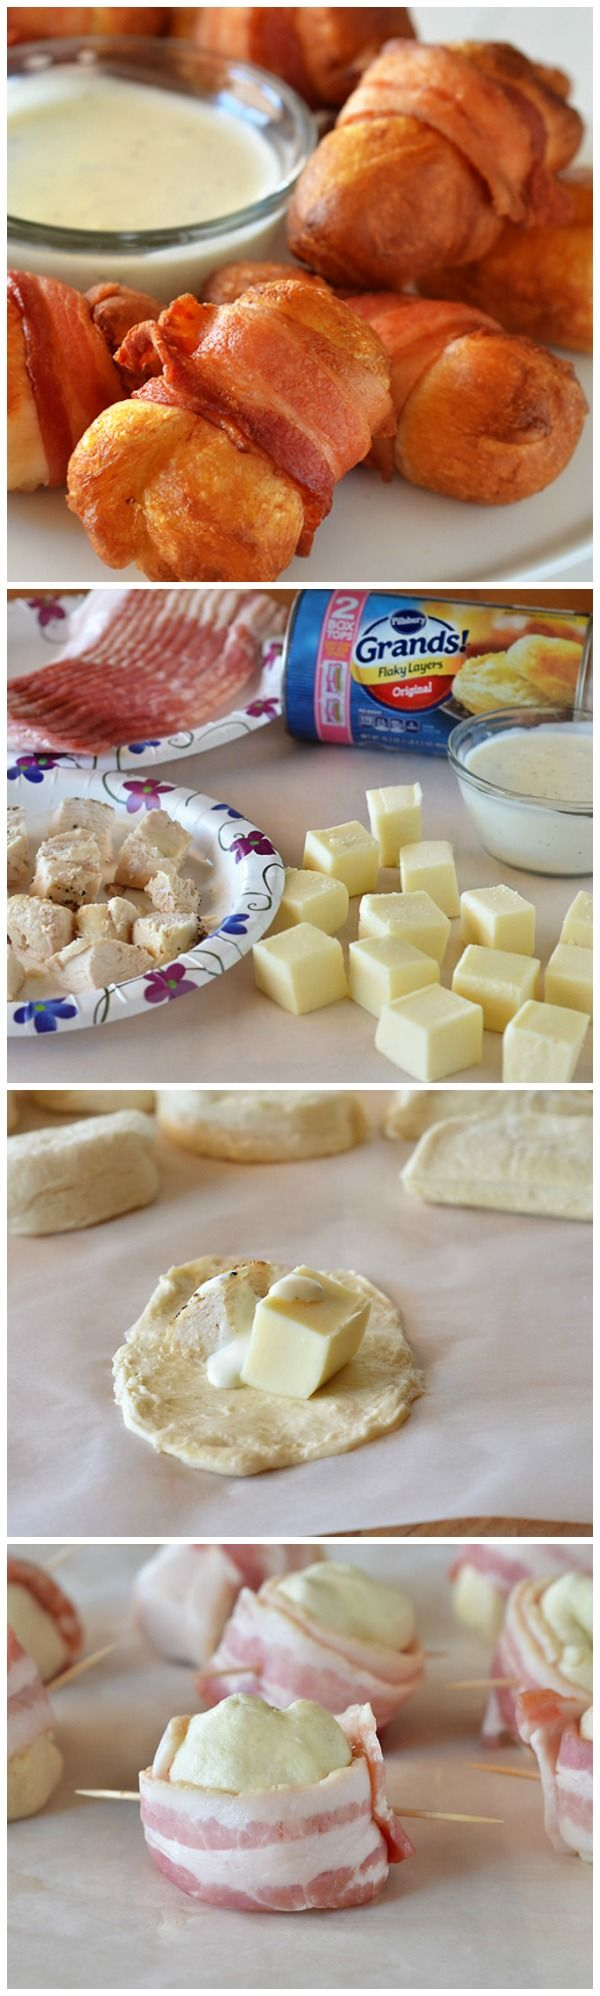 Ultimate appetizer: biscuits stuffed with chicken and ranch and then wrapped in bacon!